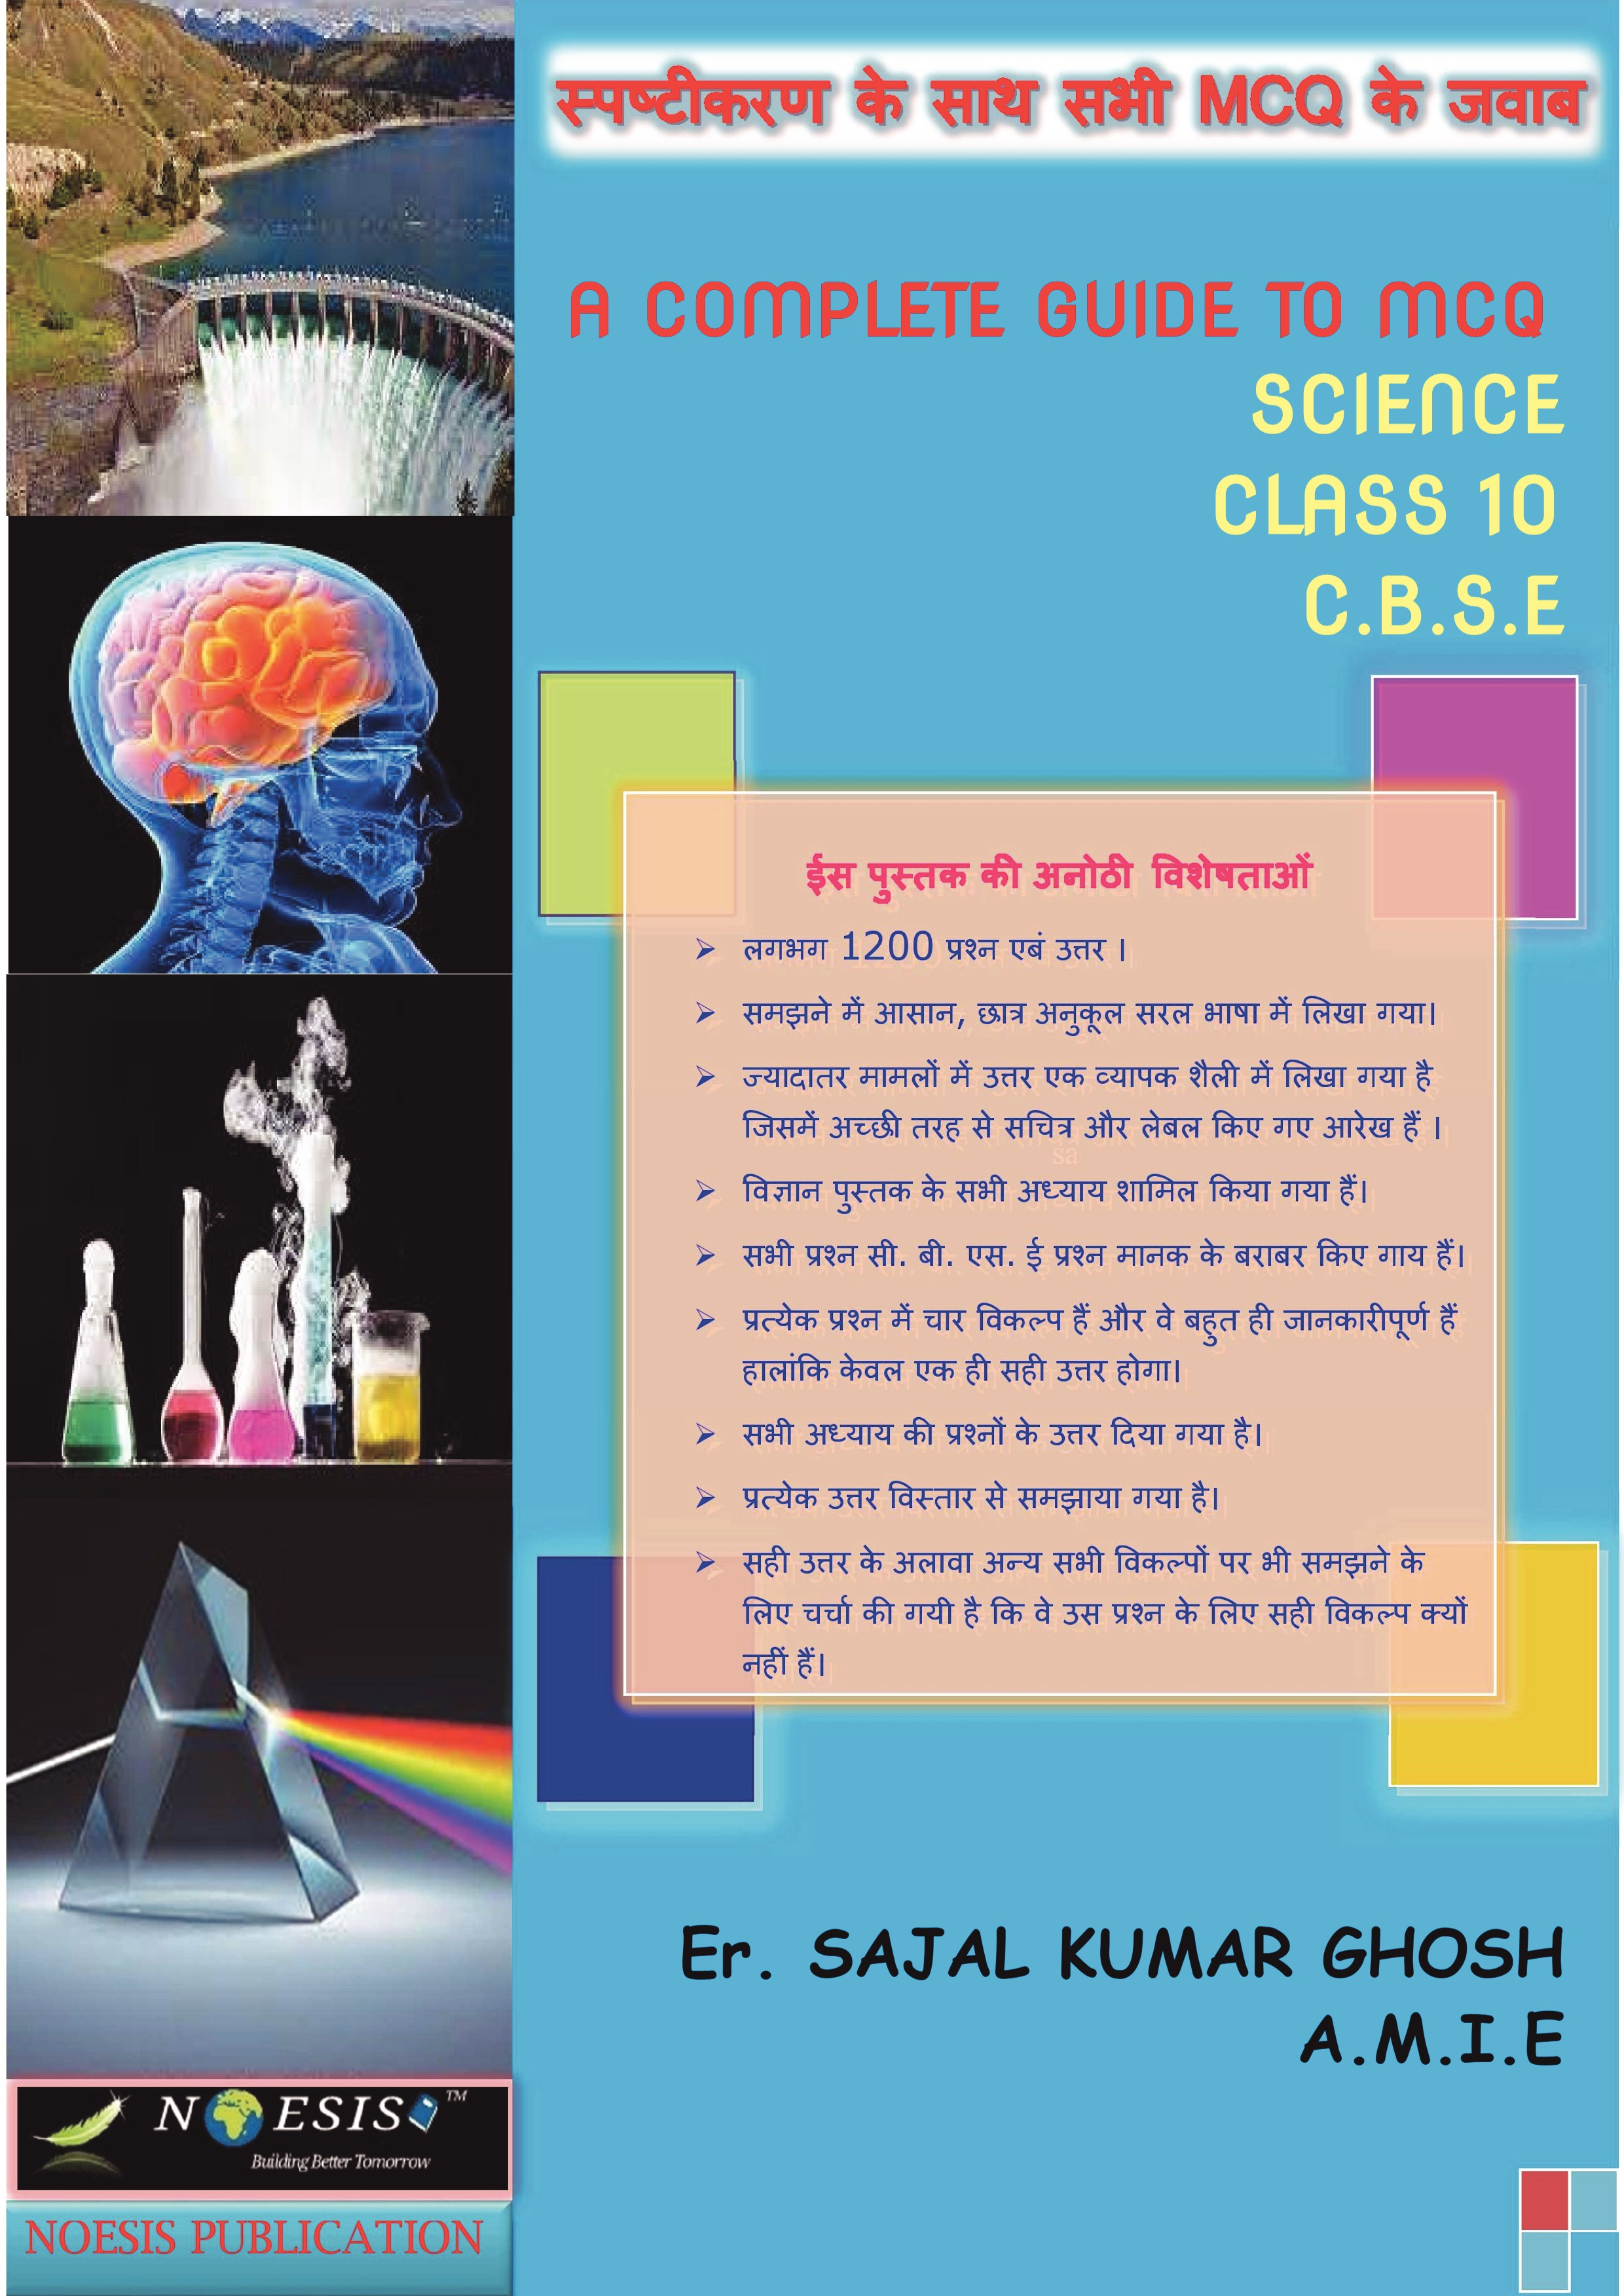 A COMPLETE GUIDE TO MCQ (C B S E,CLASS 10) SCIENCE